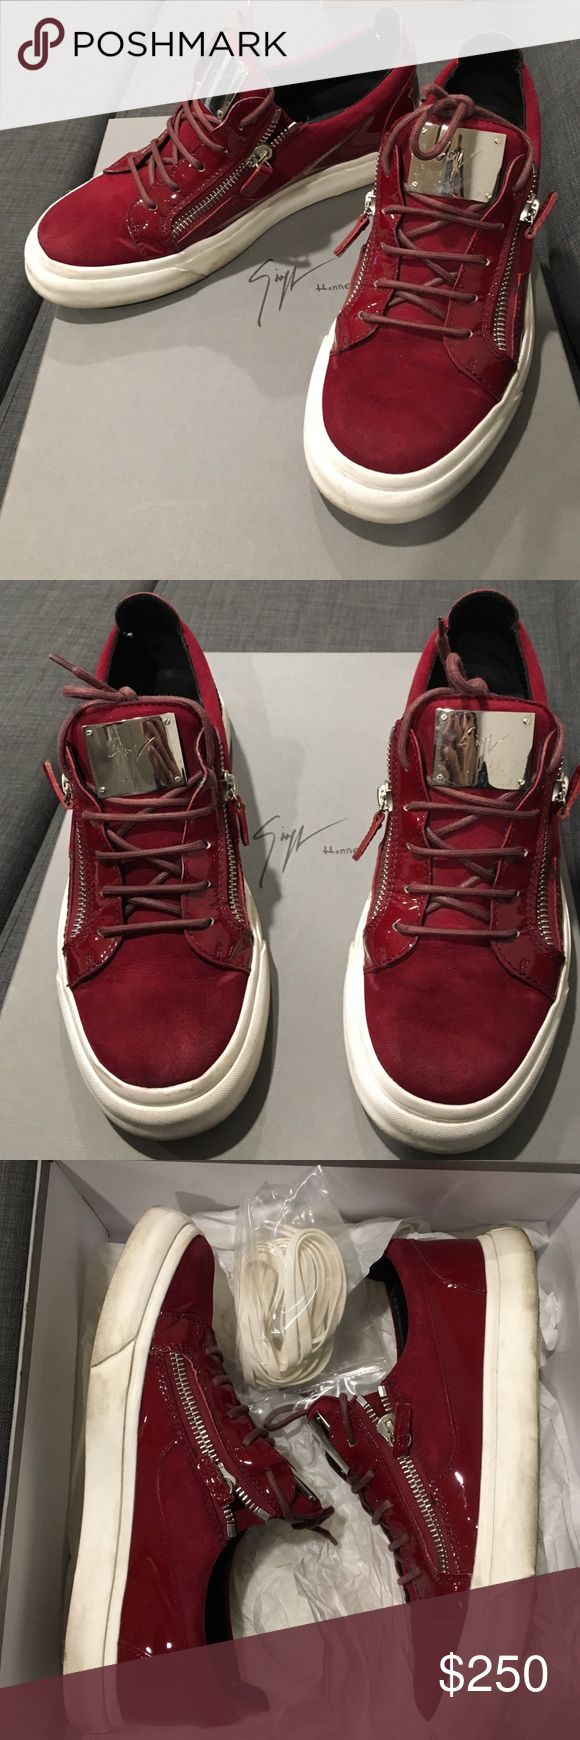 Giuseppe Zanotti mens shoes Red Giuseppe Zanotti mens shoes worn only a couple times. Giuseppe Zanotti Shoes Sneakers